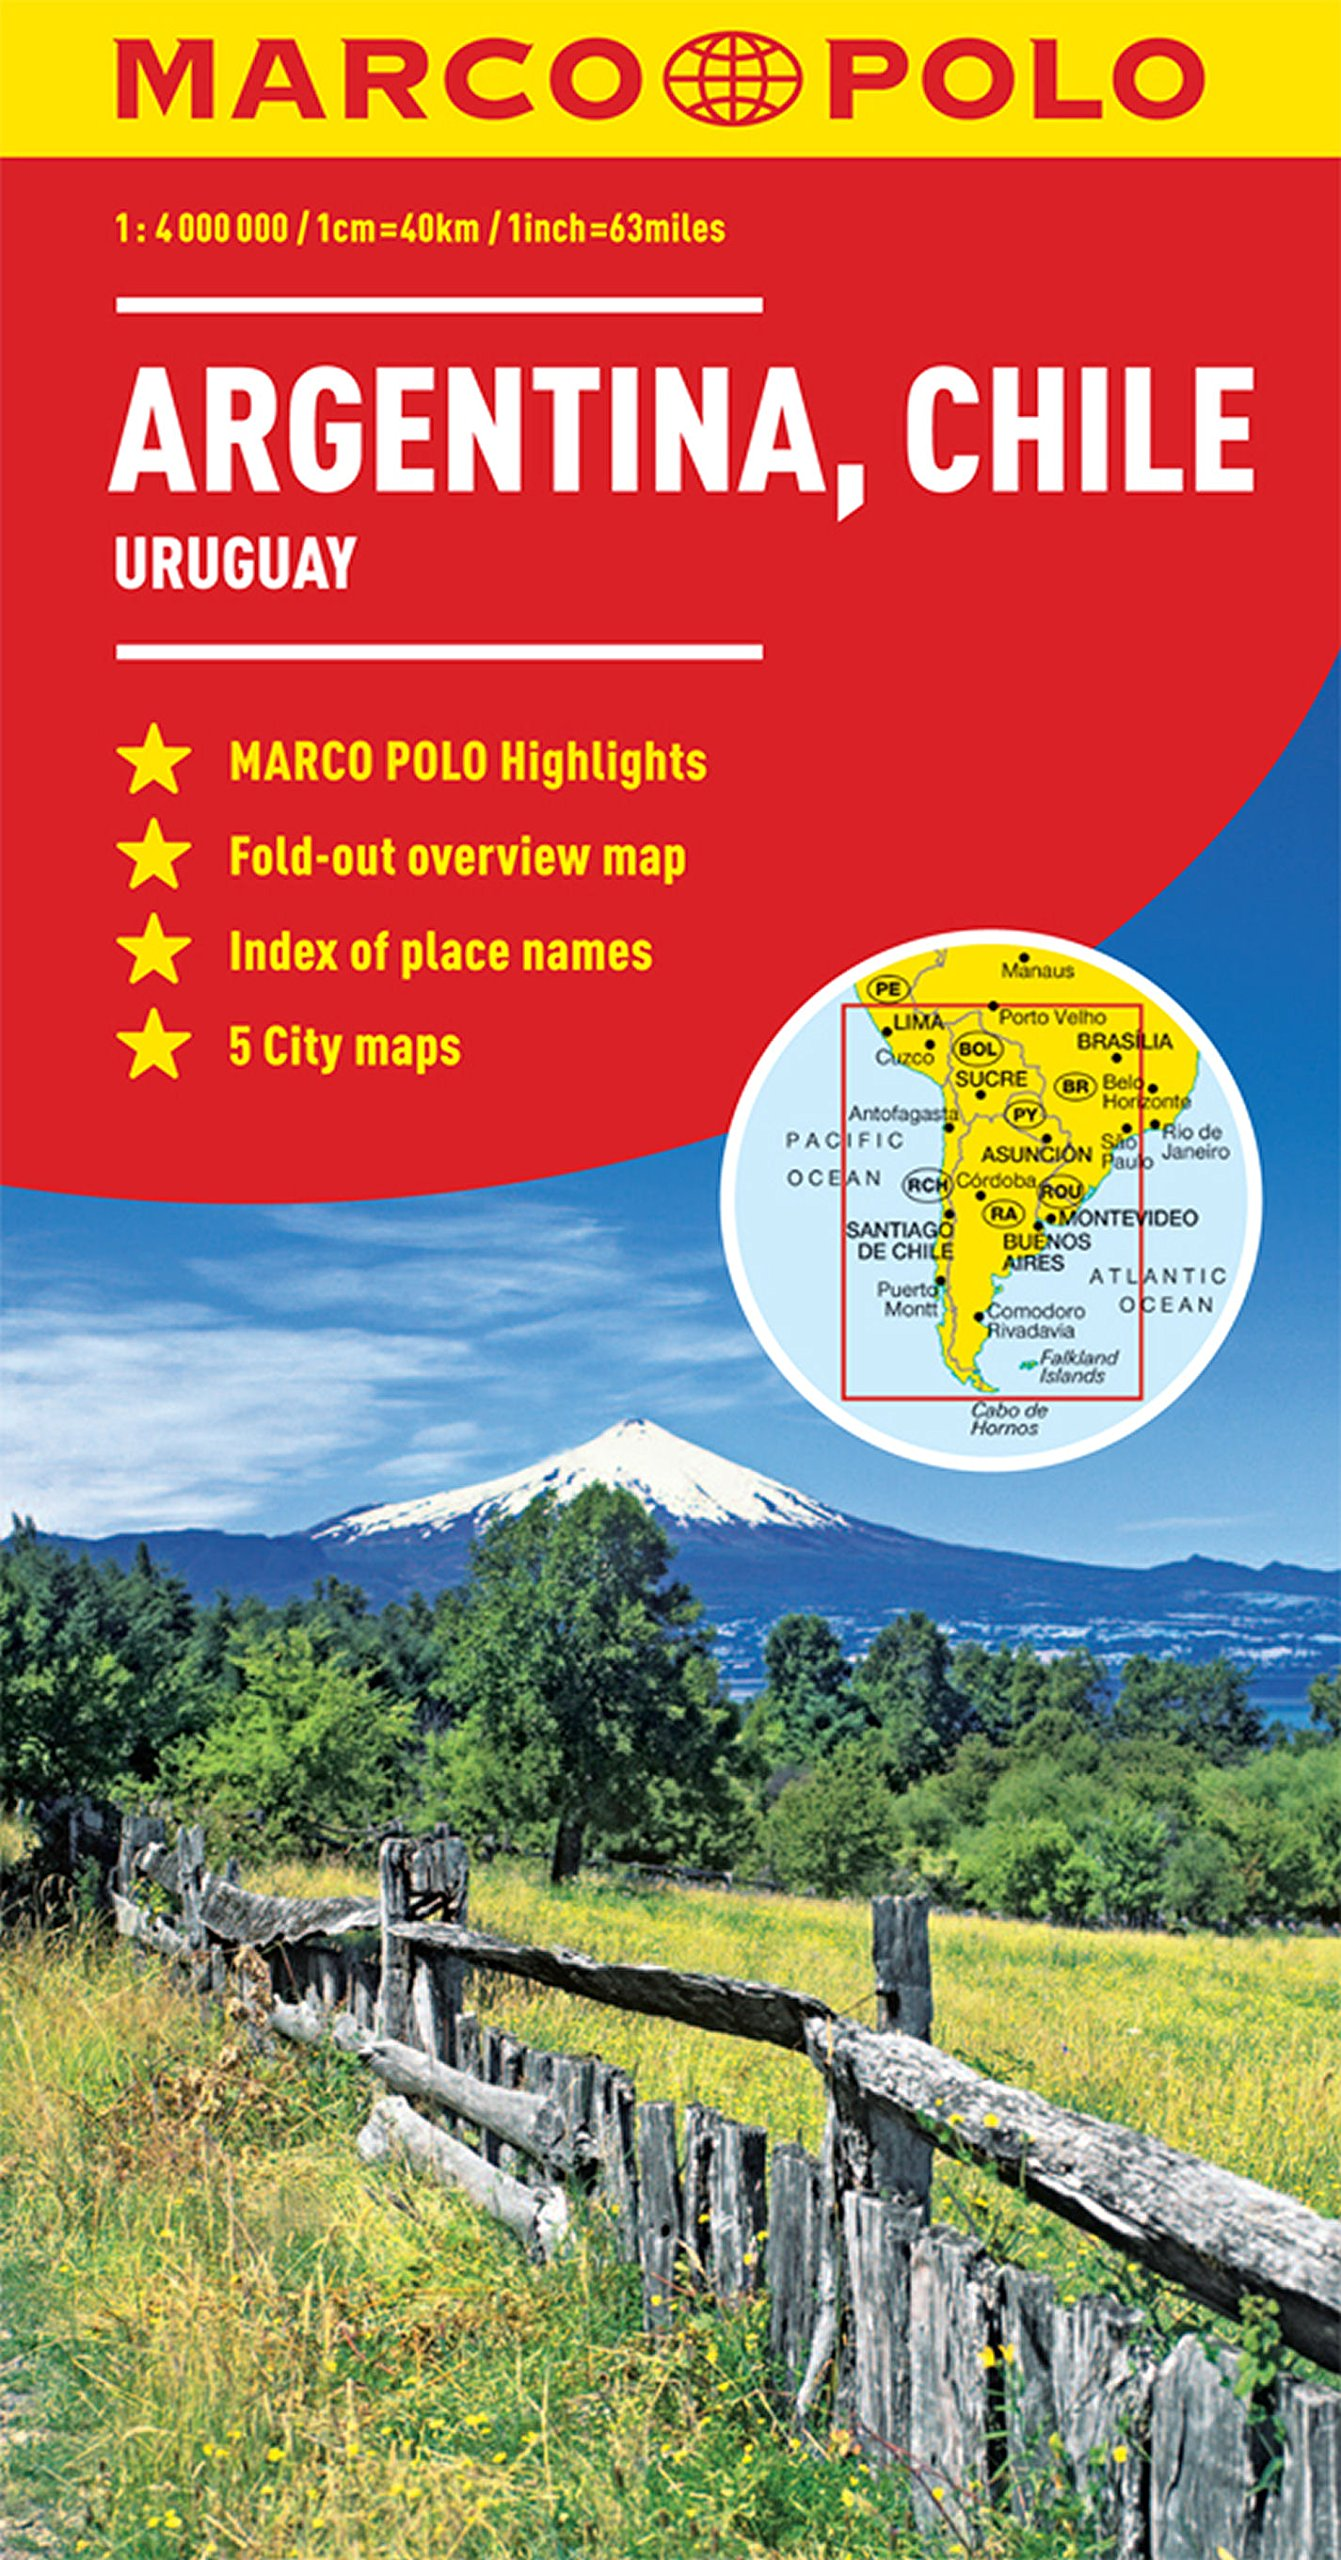 Argentina Chile Marco Polo Map Uruguay Marco Polo Guide - Argentina chile map